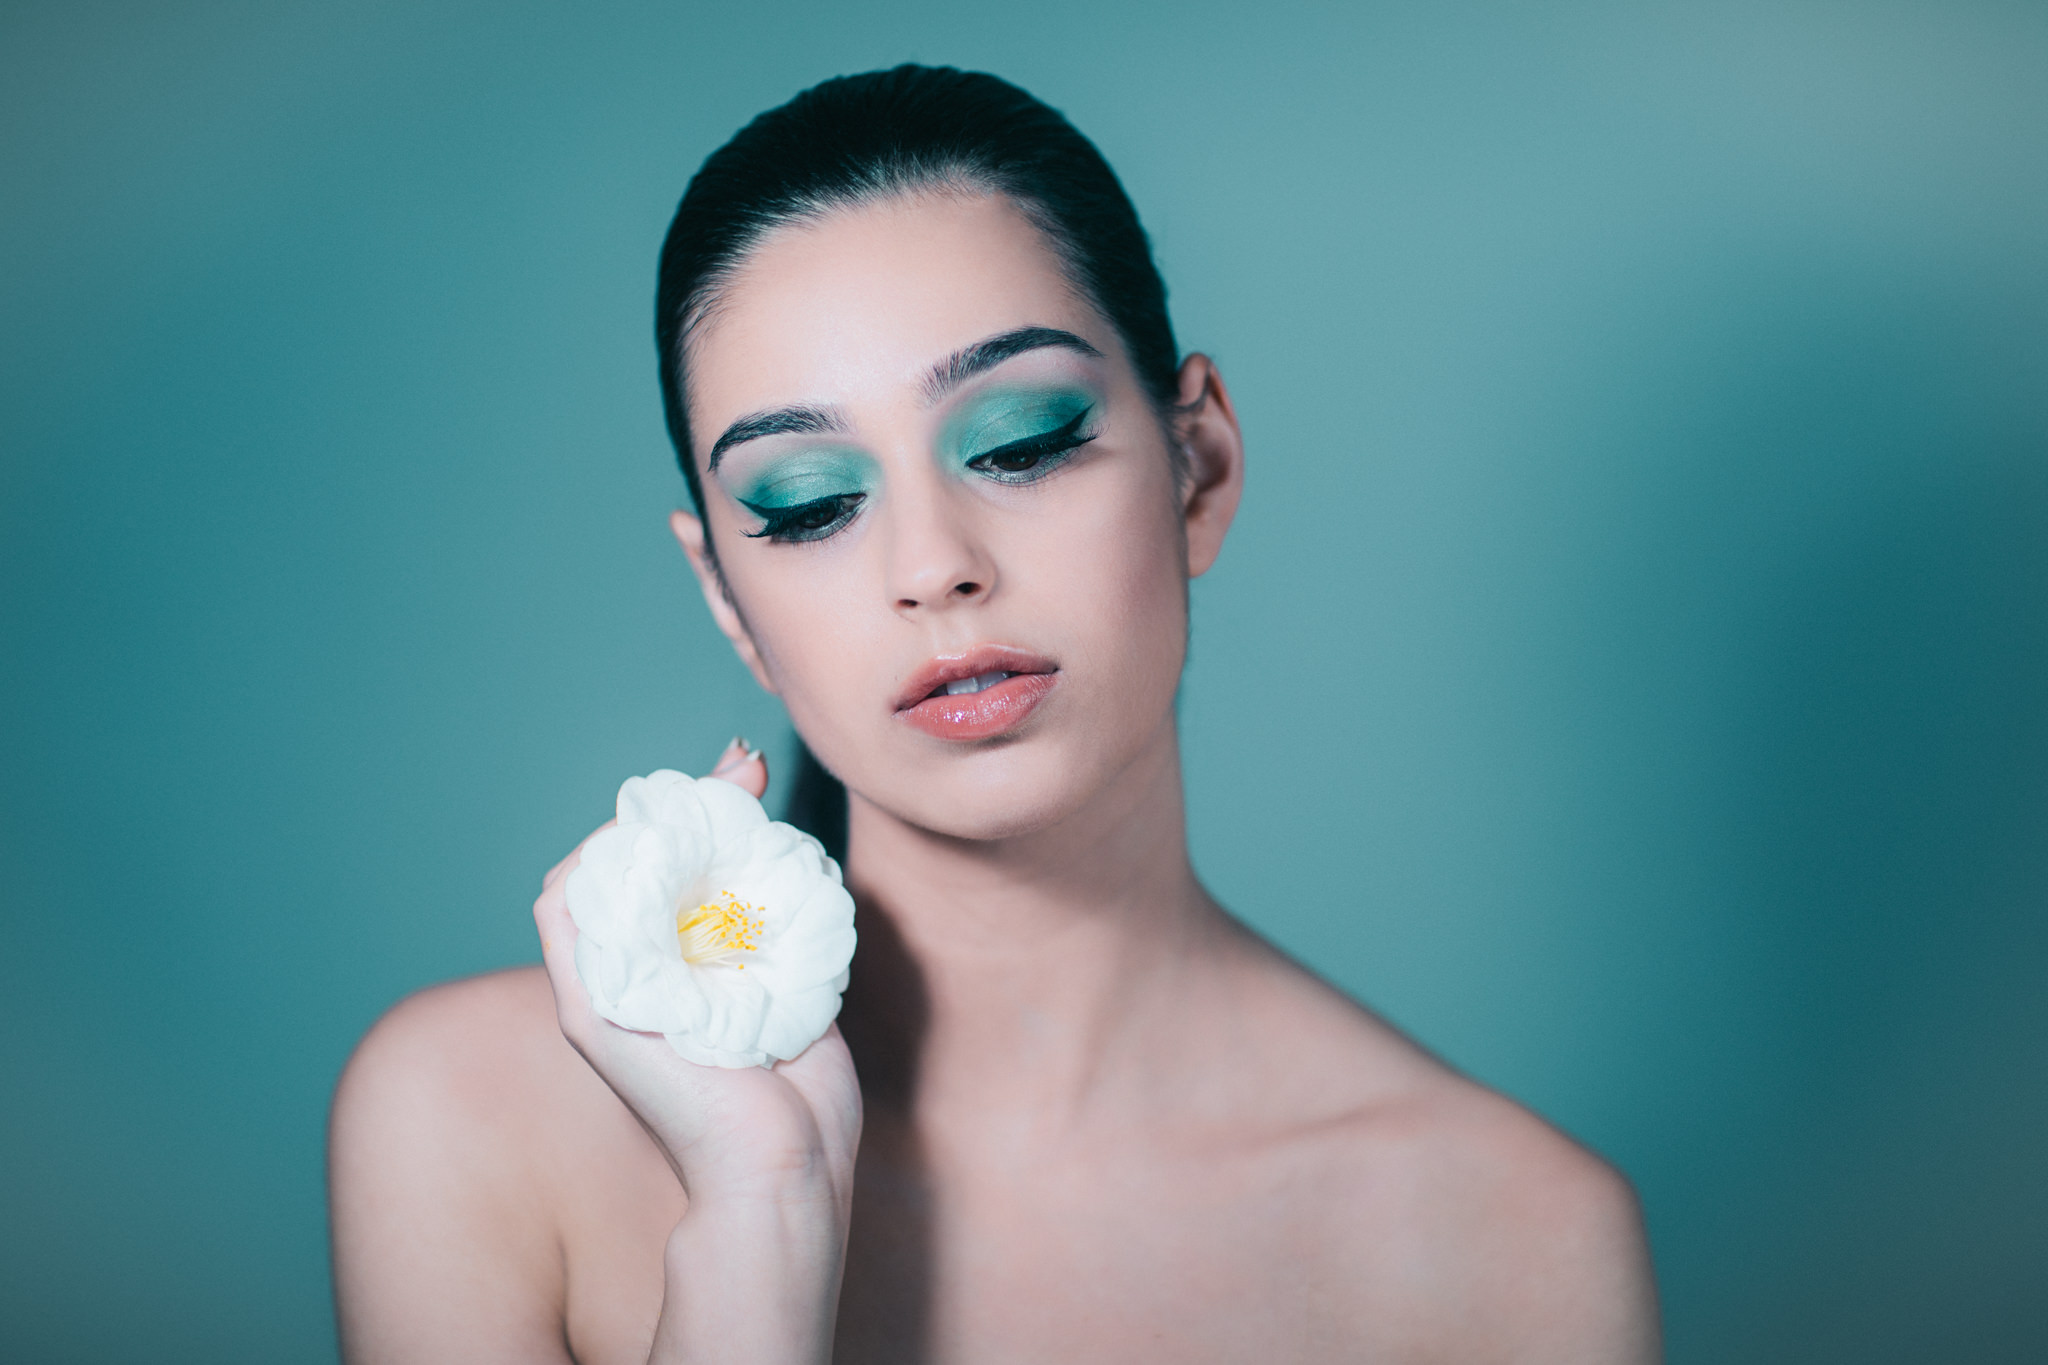 beauty photos melbourne - model with flower (camelia) on blue backdrop